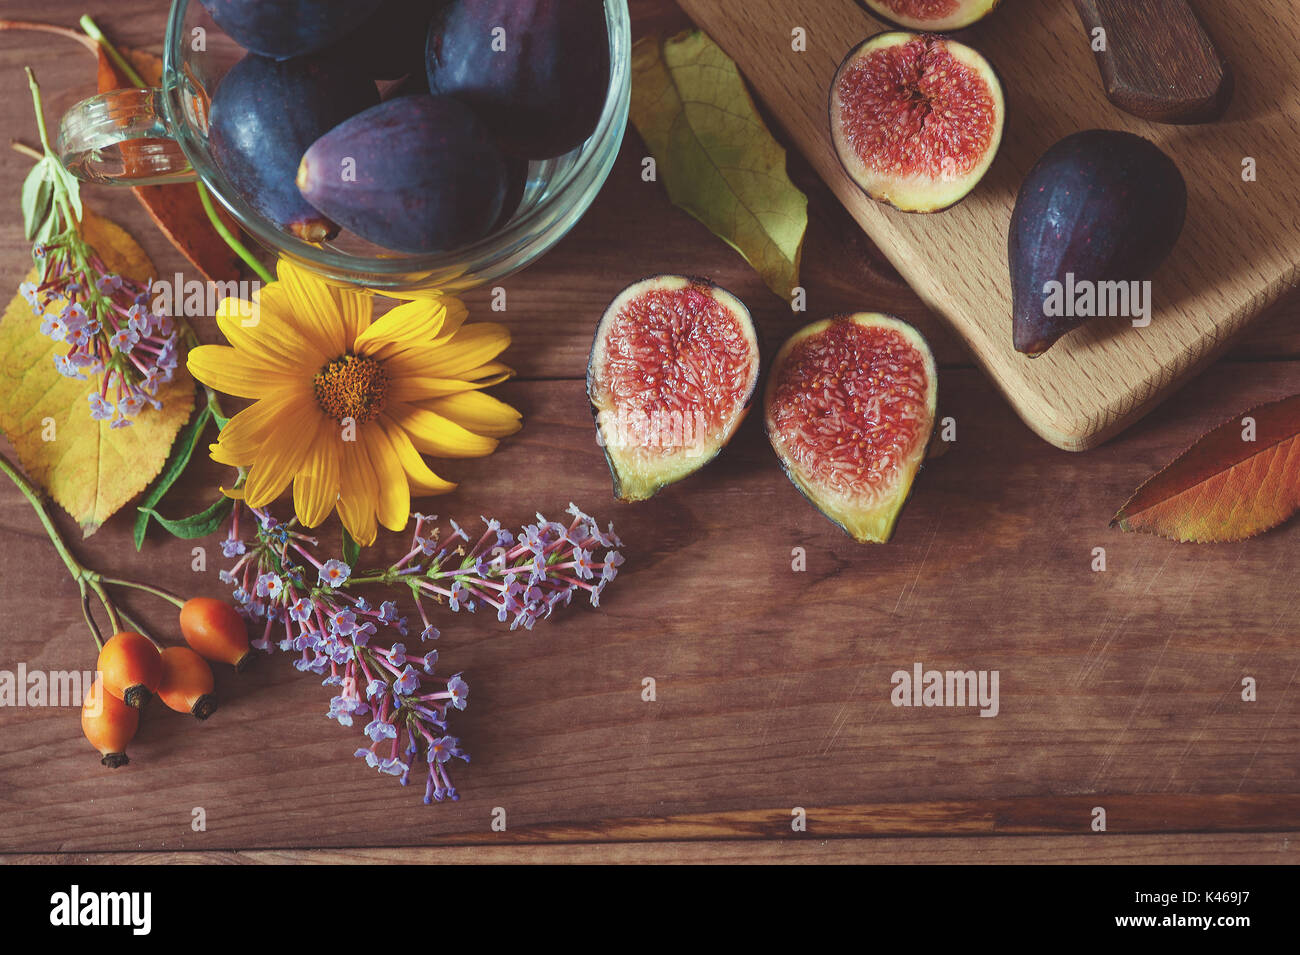 Ripe delicious figs and autumn flowers on wooden background. Selective focus - Stock Image